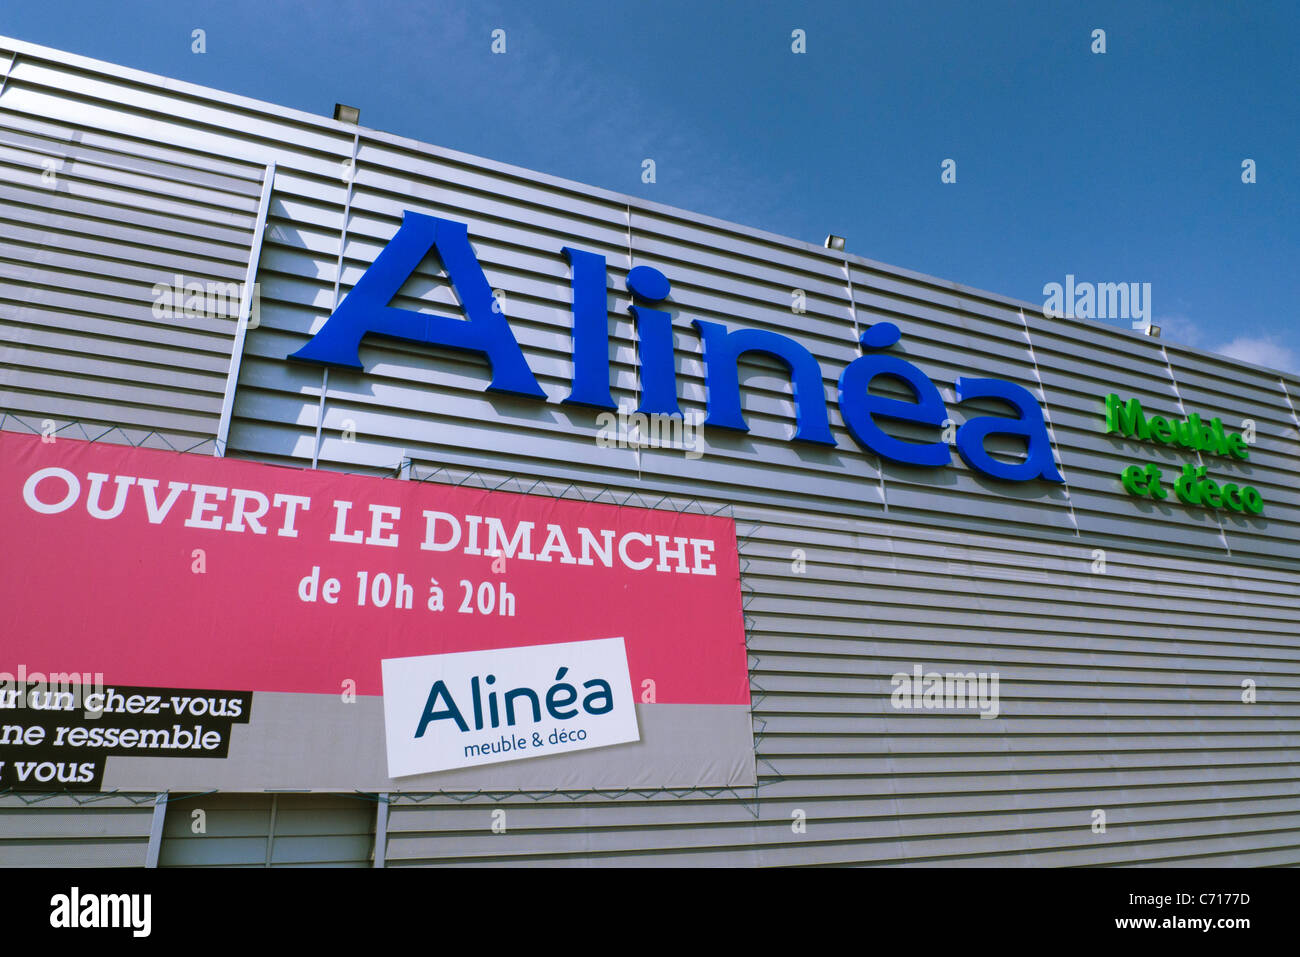 Alinea Caen French Diy Store Stock Photos French Diy Store Stock Images Alamy